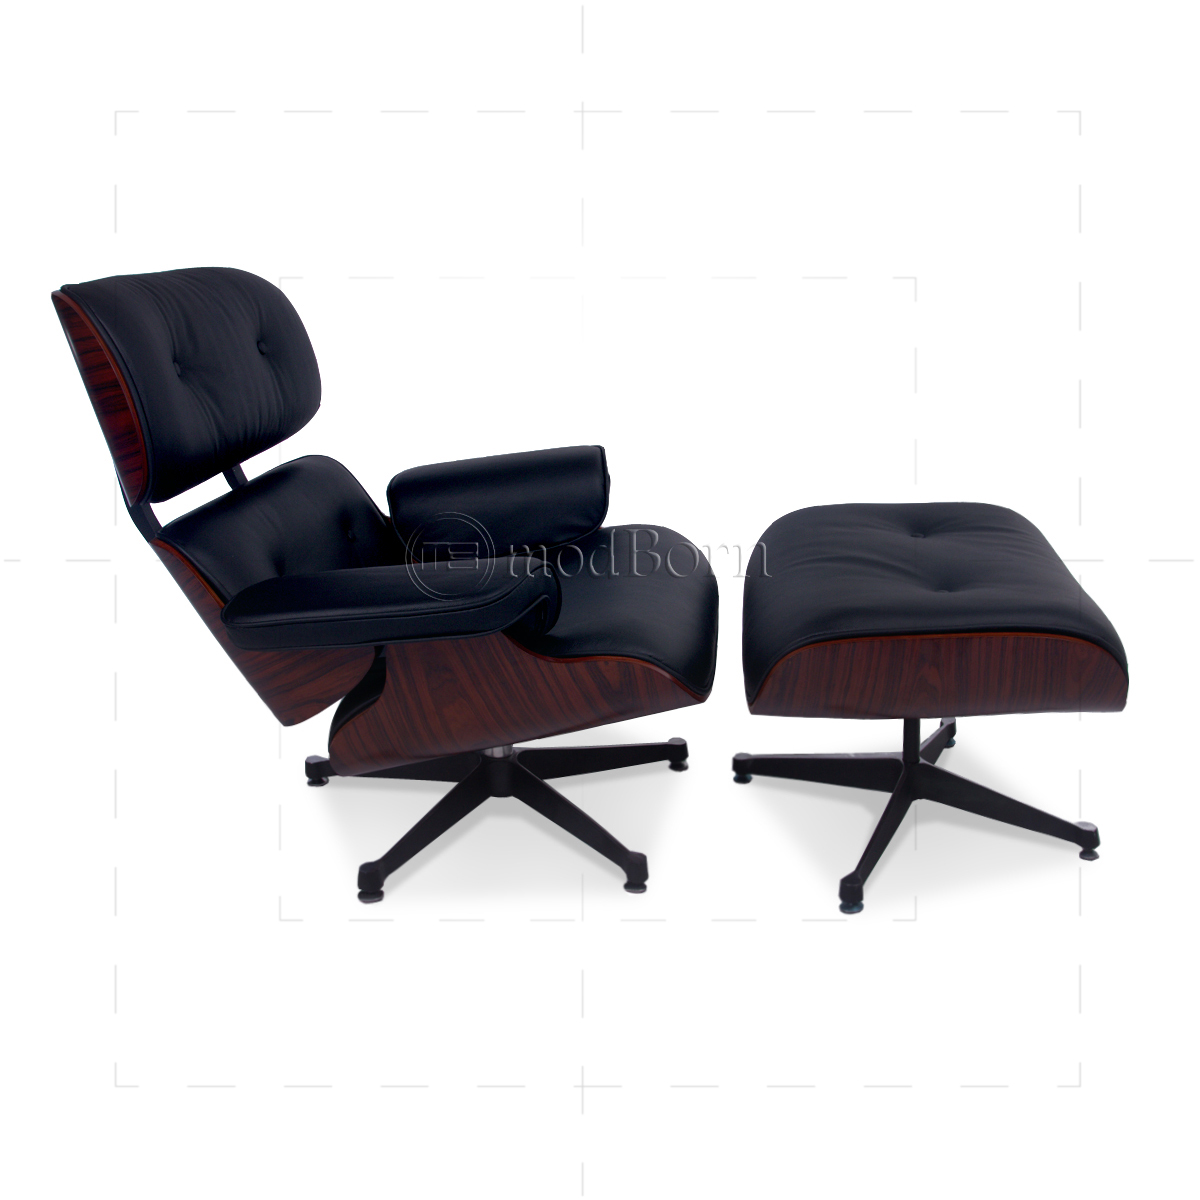 Eames Style Lounge Chair And Ottoman Black Leather